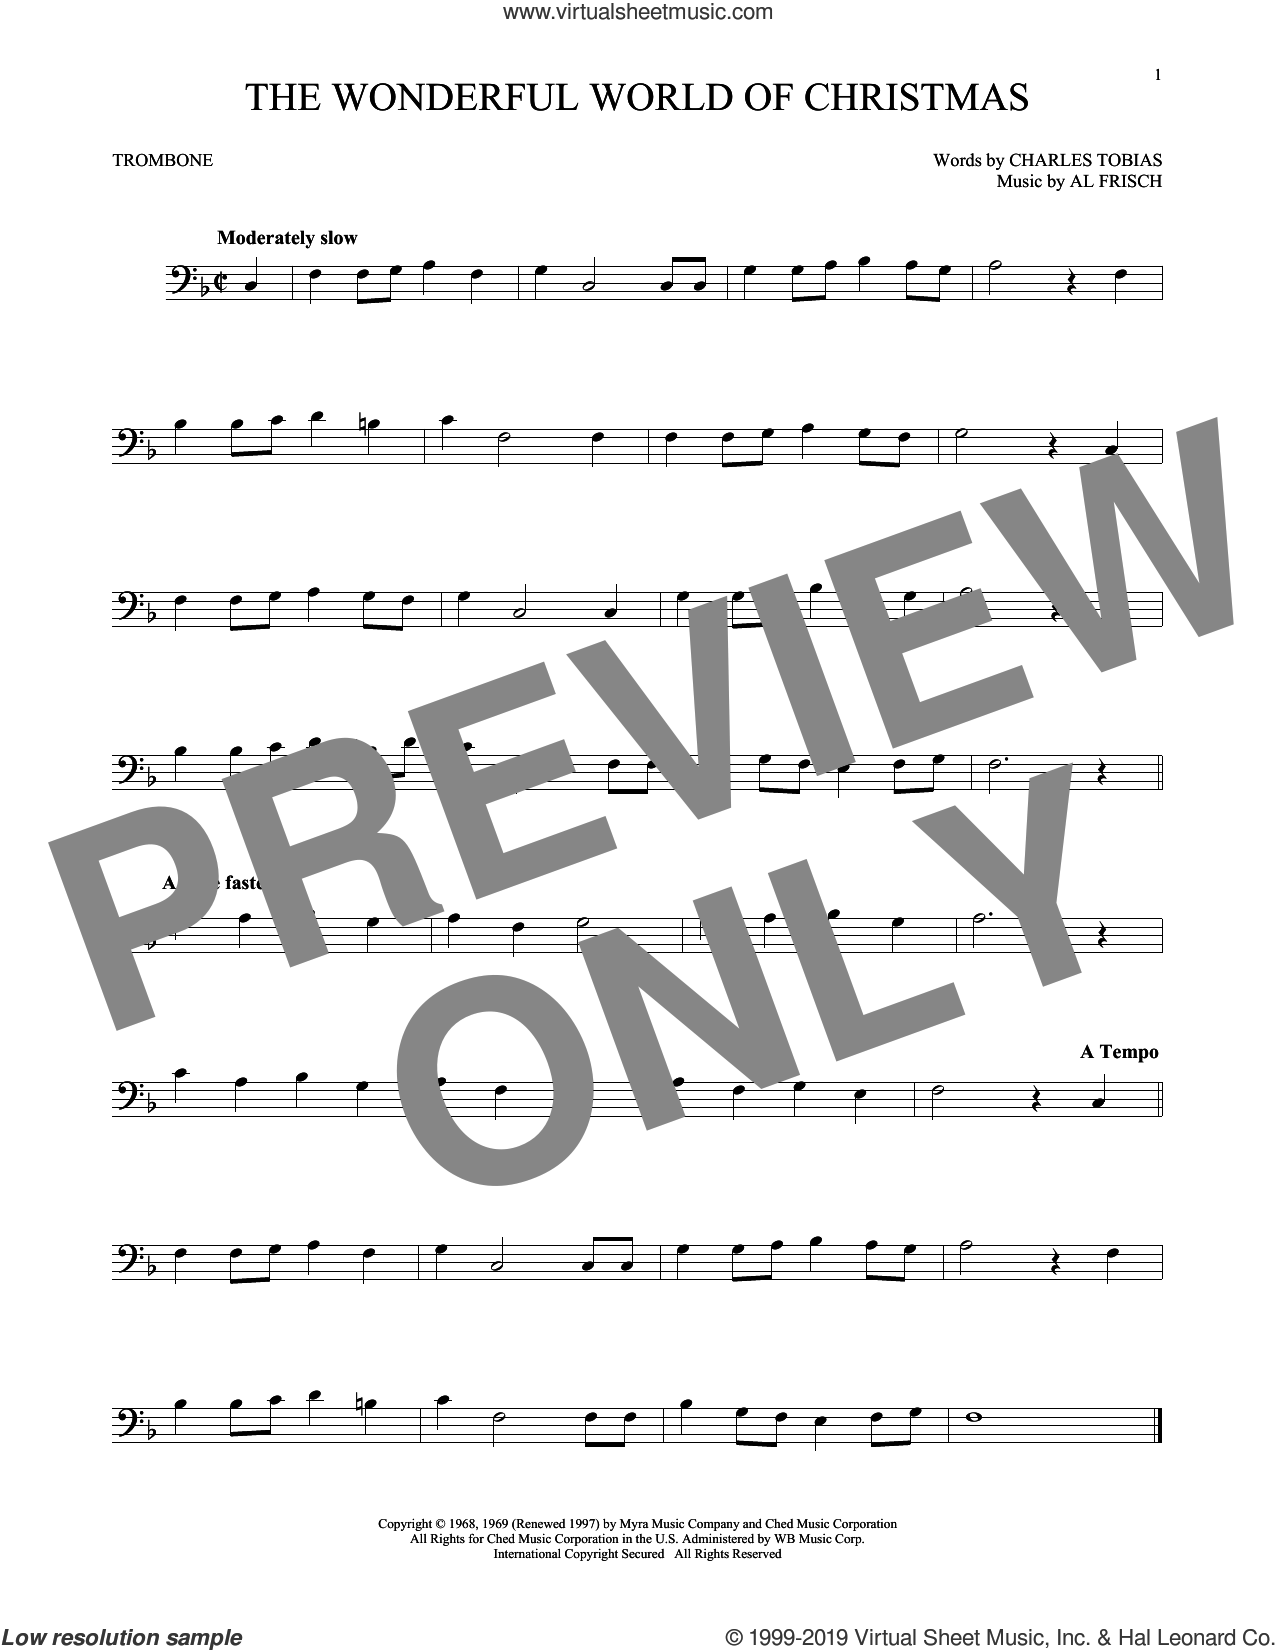 The Wonderful World Of Christmas sheet music for trombone solo by Elvis Presley, Al Frisch and Charles Tobias, intermediate skill level